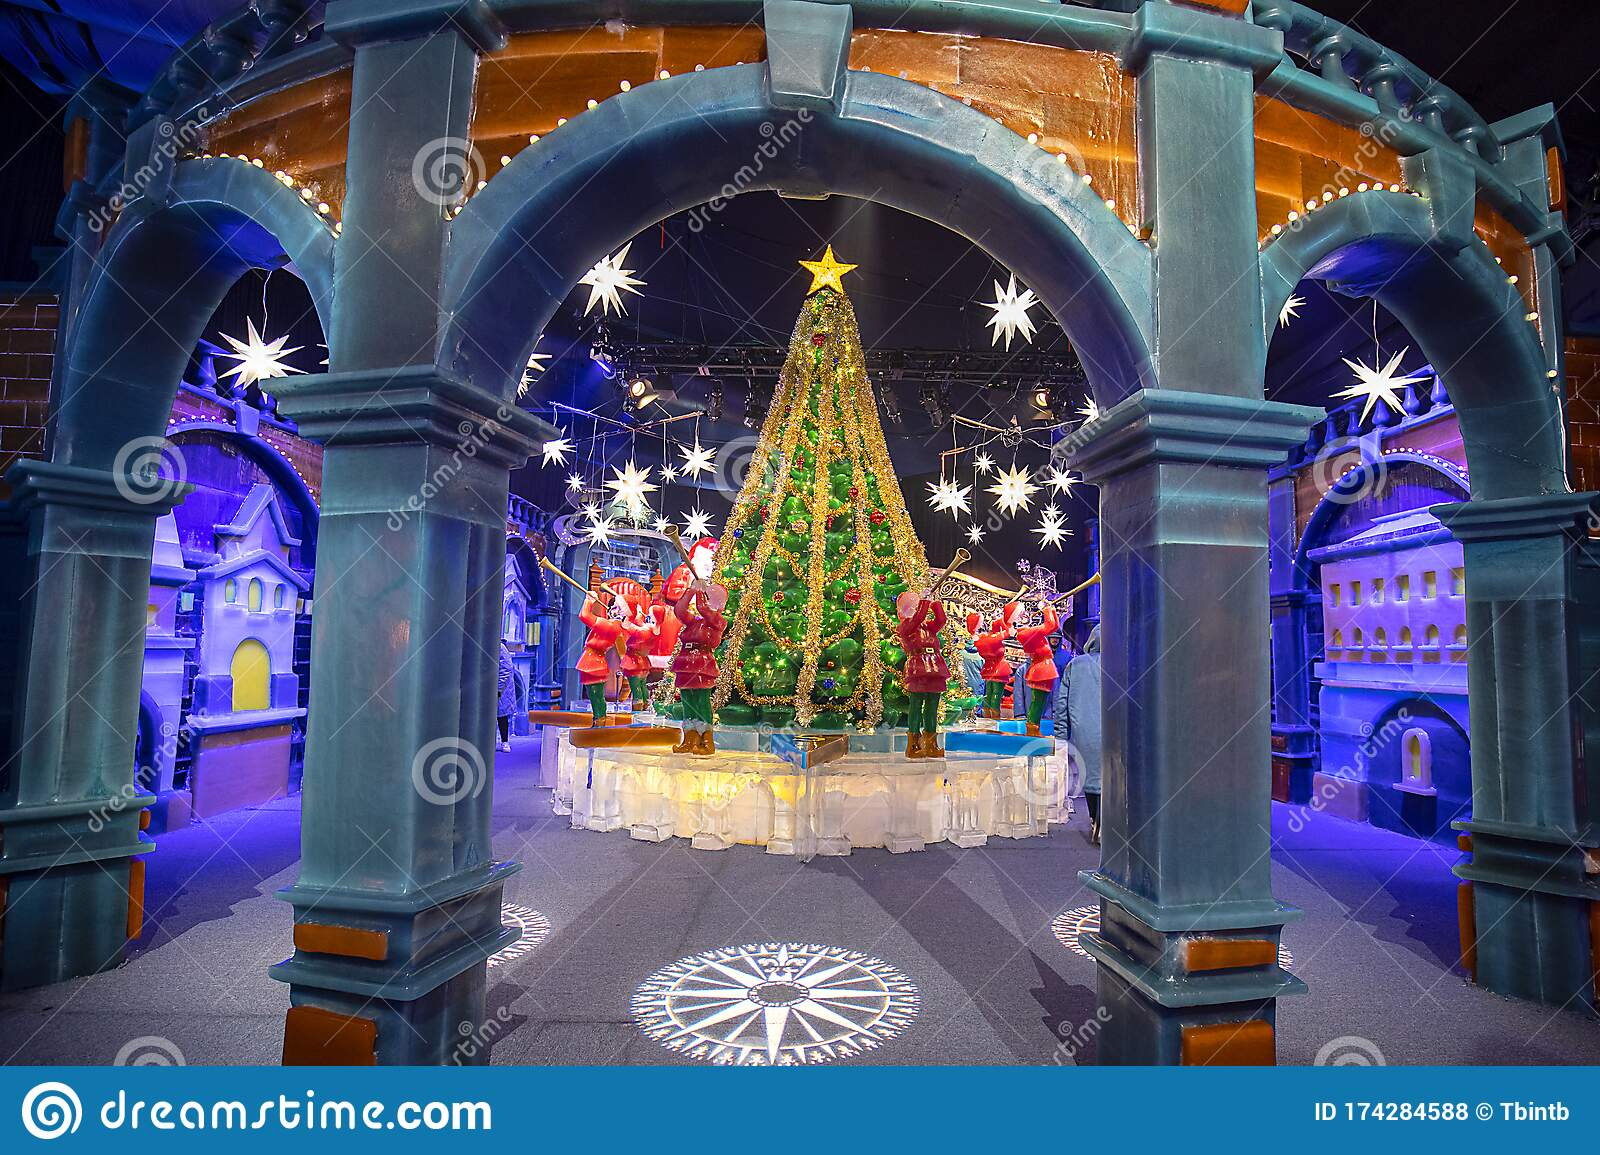 Polar Express Animated Film Scene Of Trumpet Orchestra Around Christmas Tree At The North Pole ...